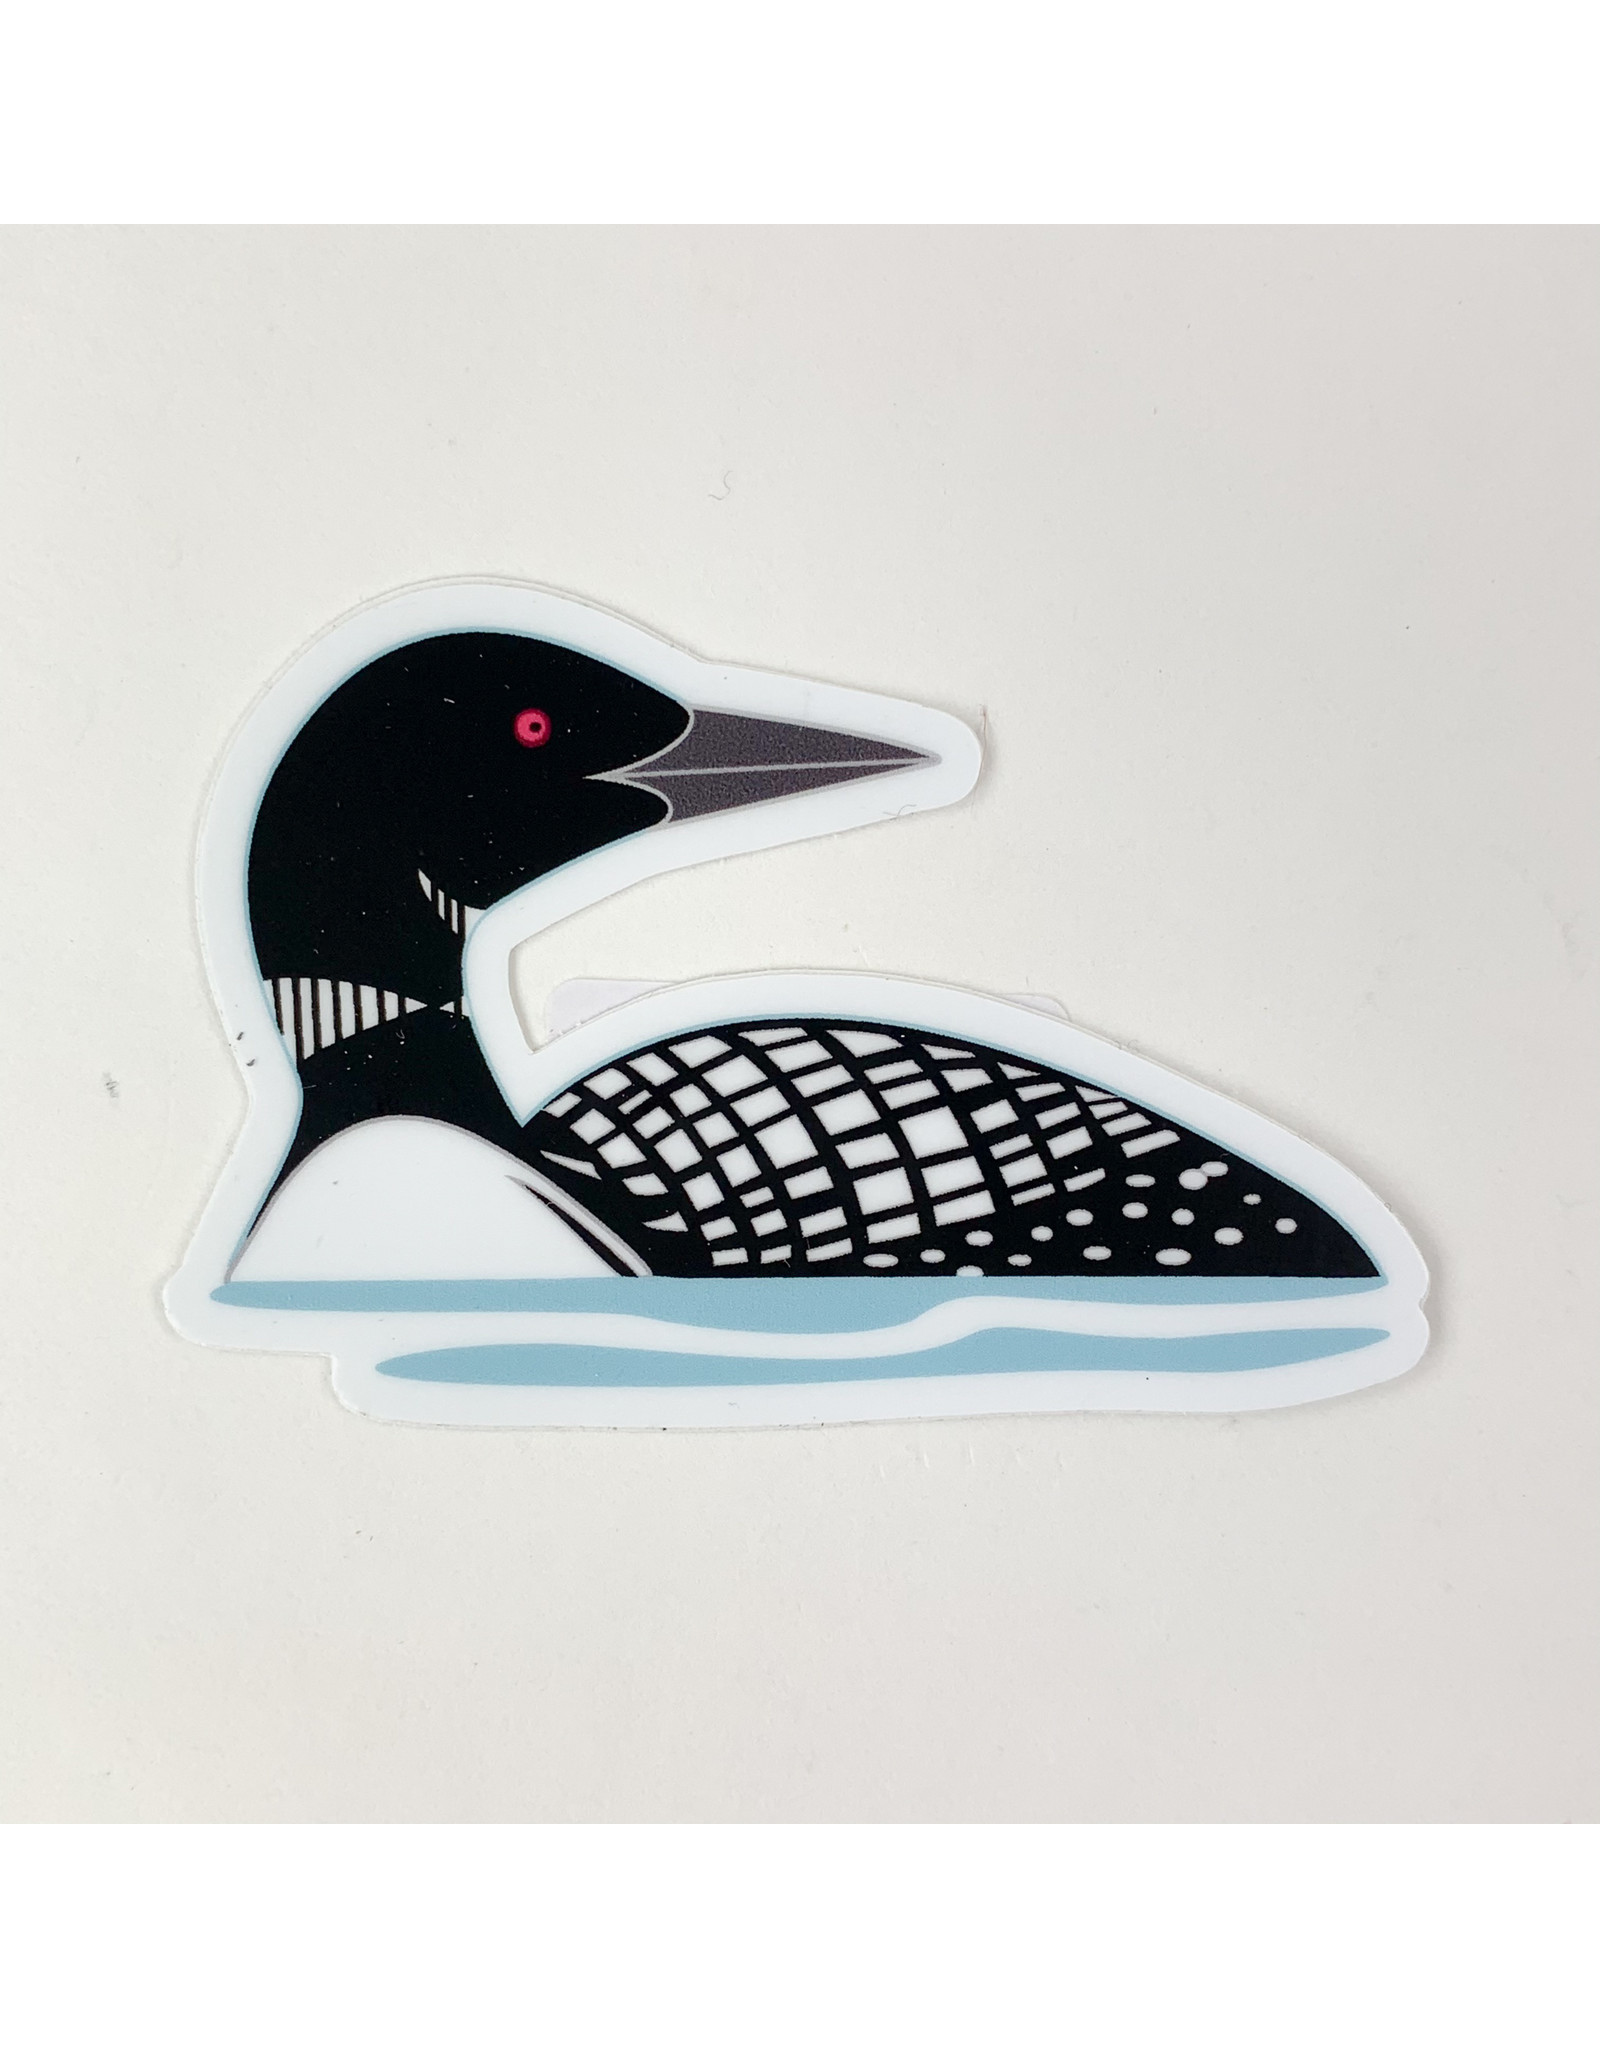 Mn. Loon - sticker